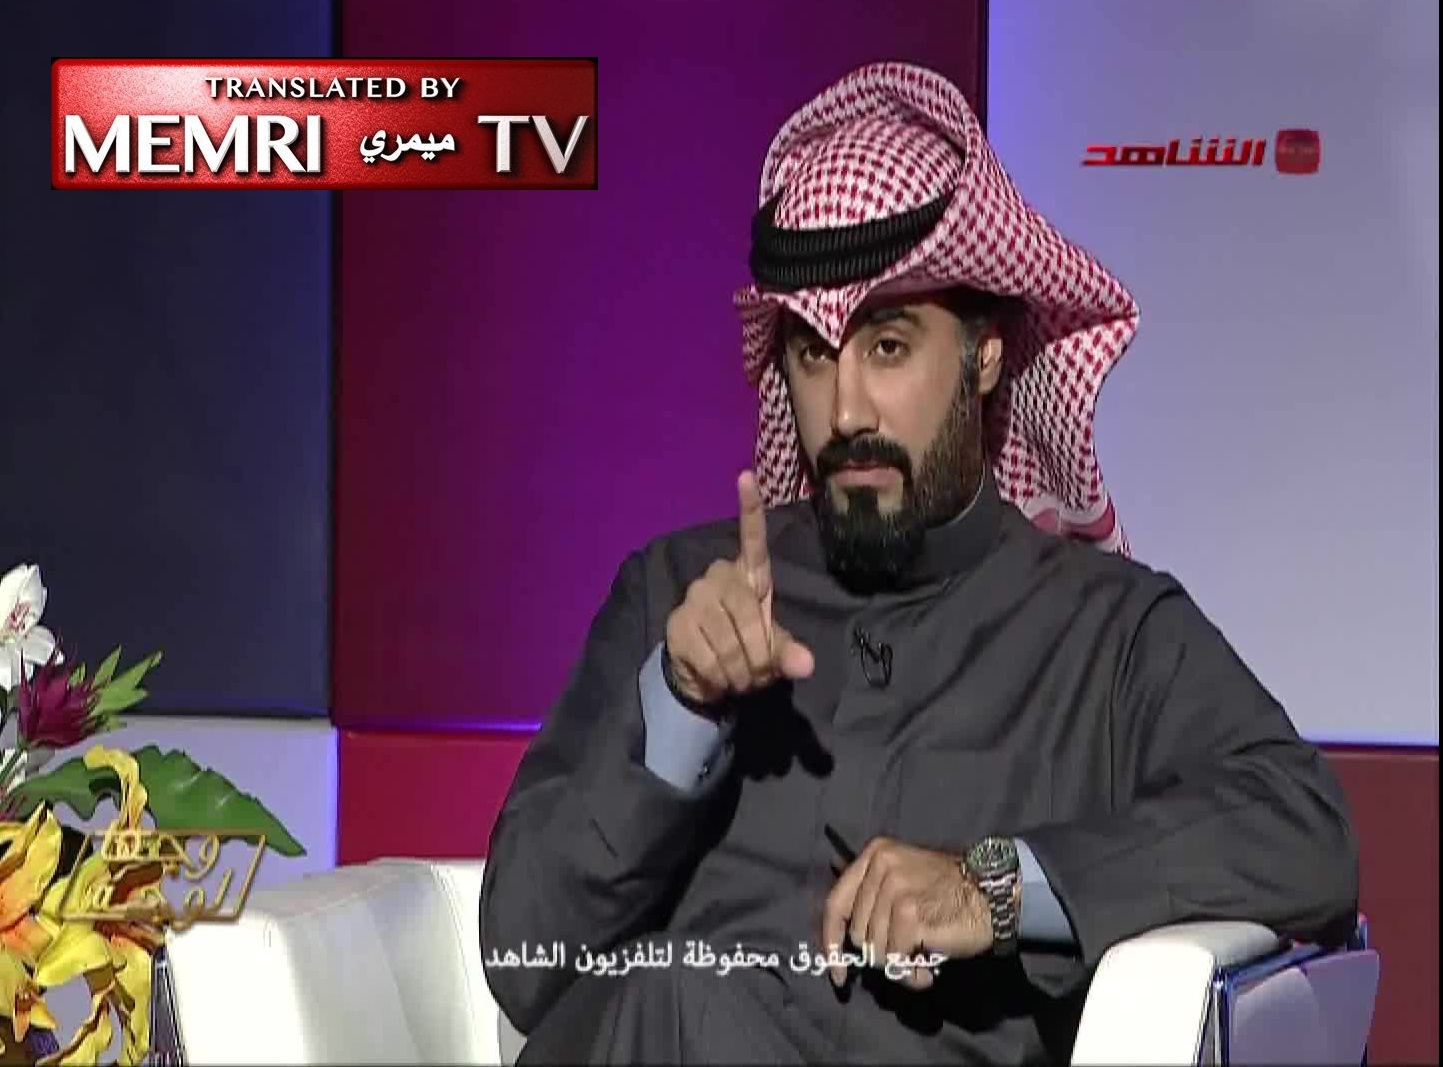 Kuwaiti Liberal Activist Nasser Dashti Clashes with Islamist Journalist Saeed Tawfiki over Freedom of Belief